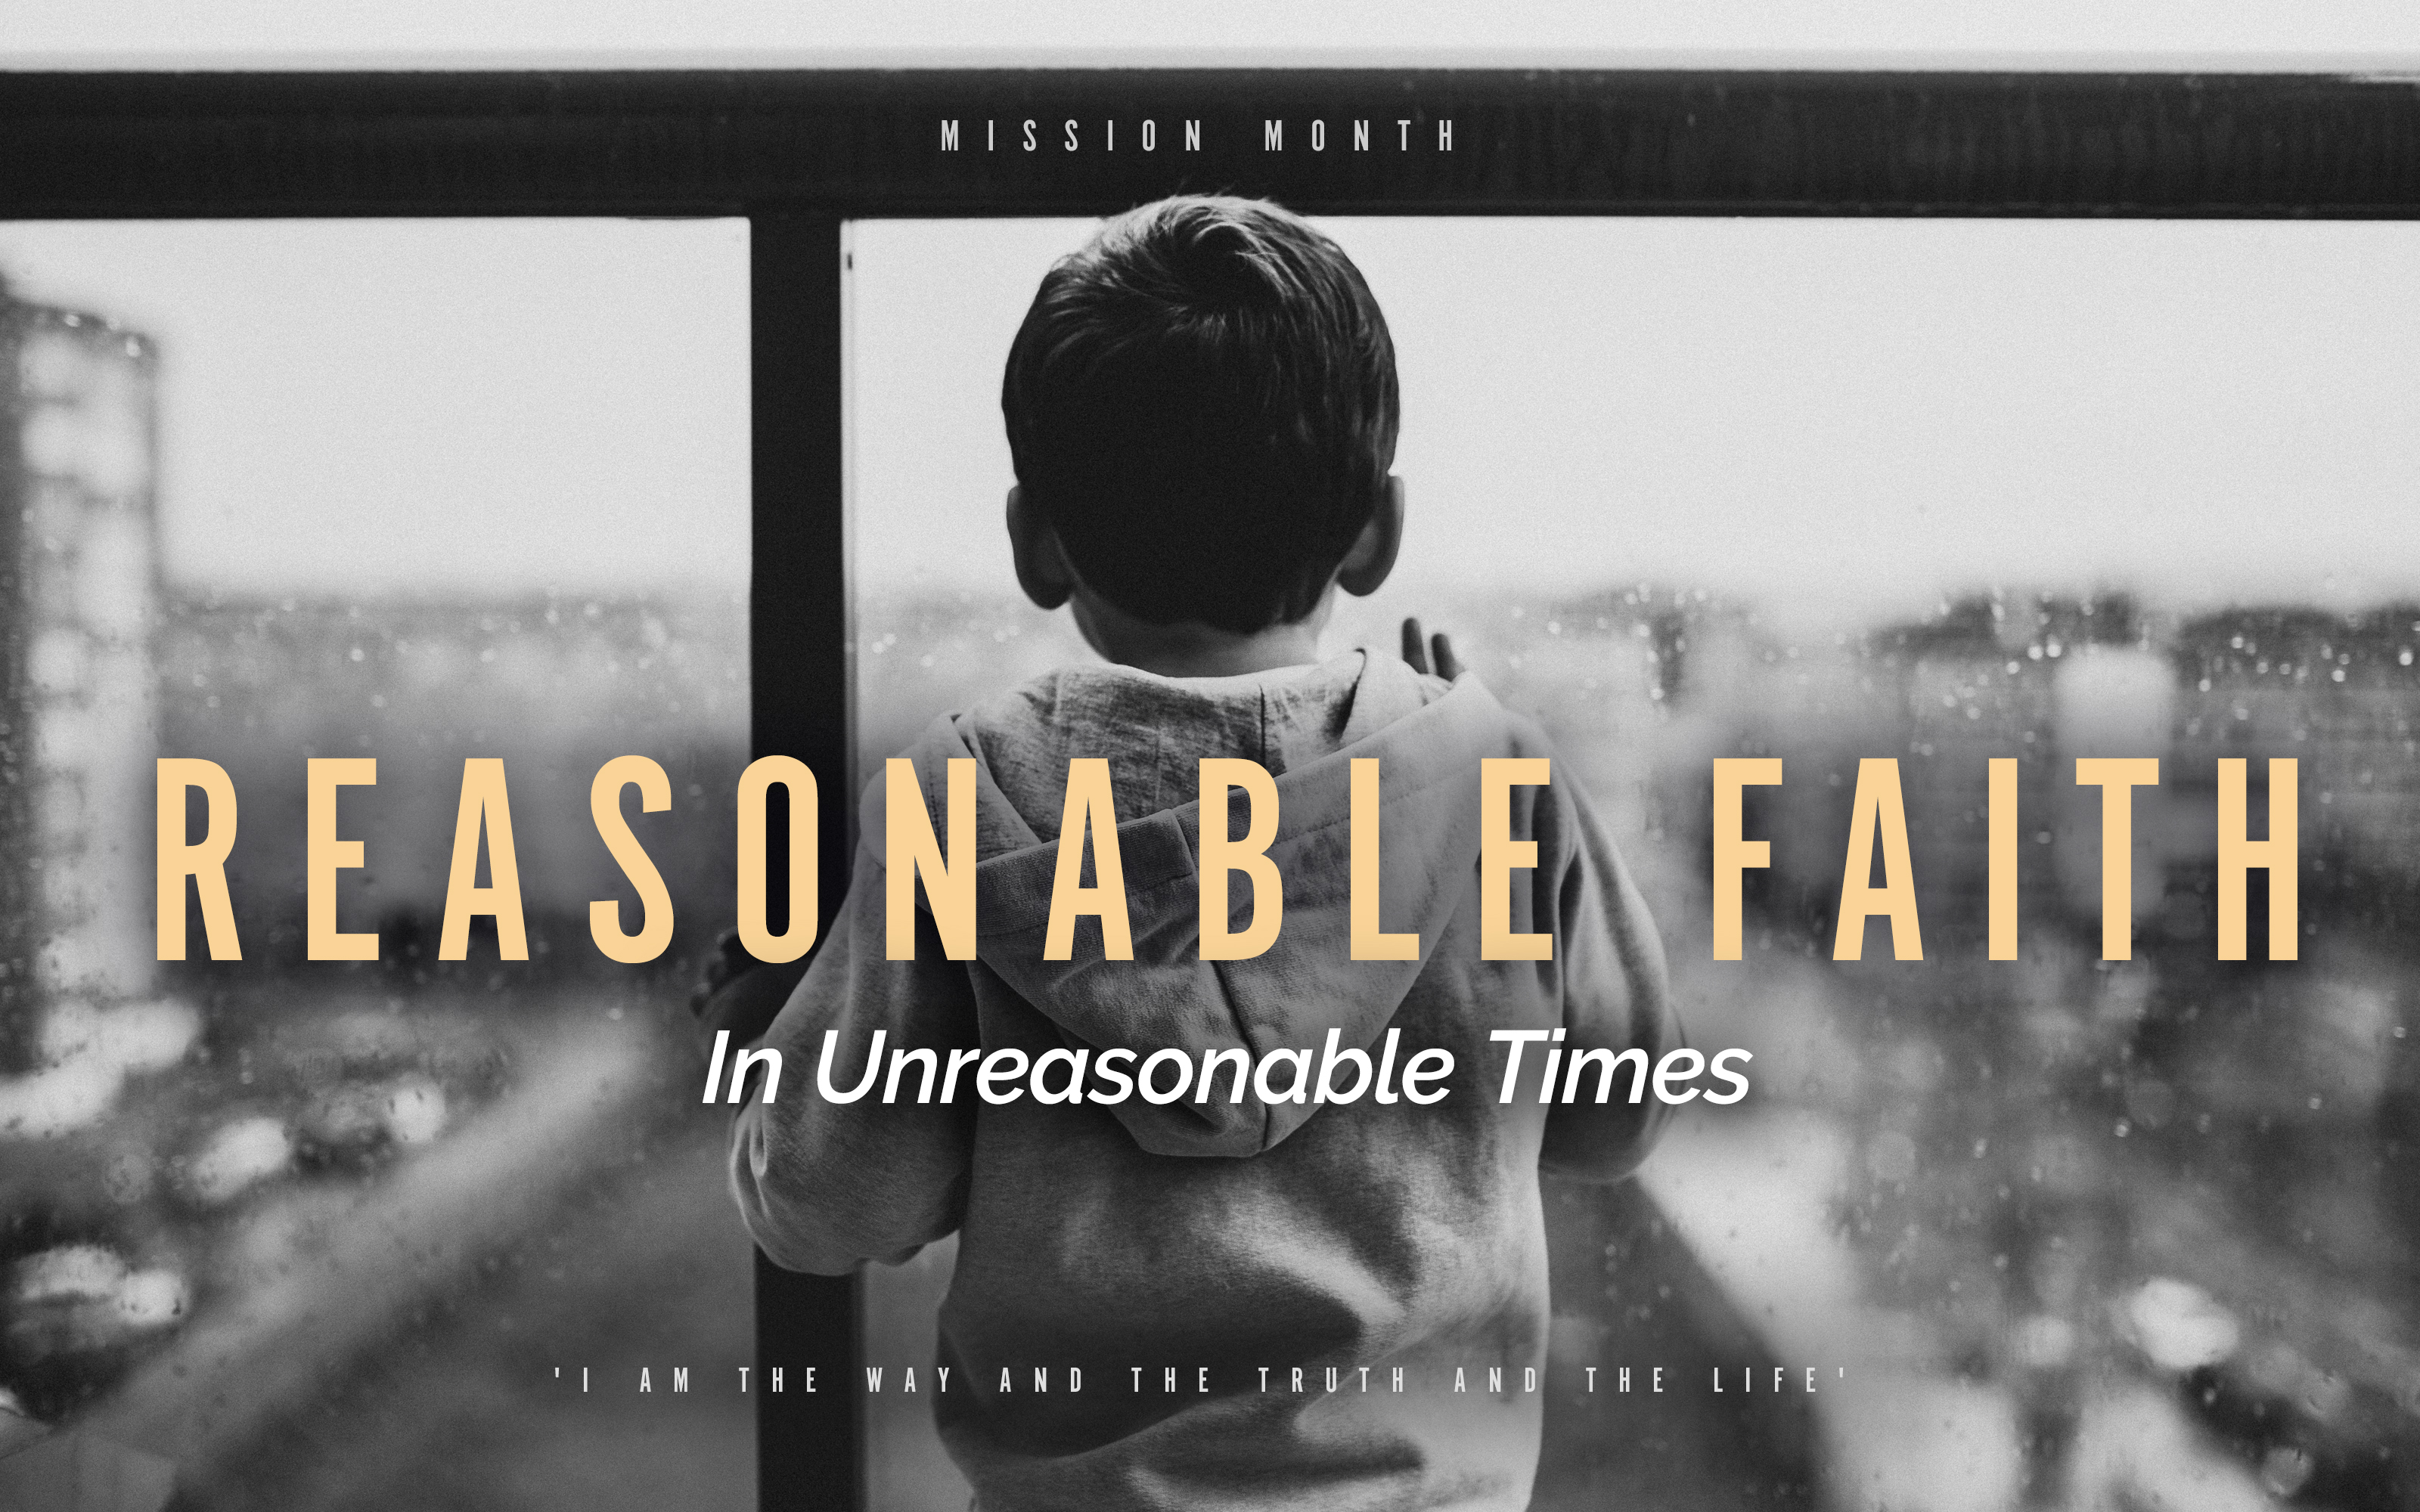 Reasonable Faith in Unreasonable Times - THE TRUTH